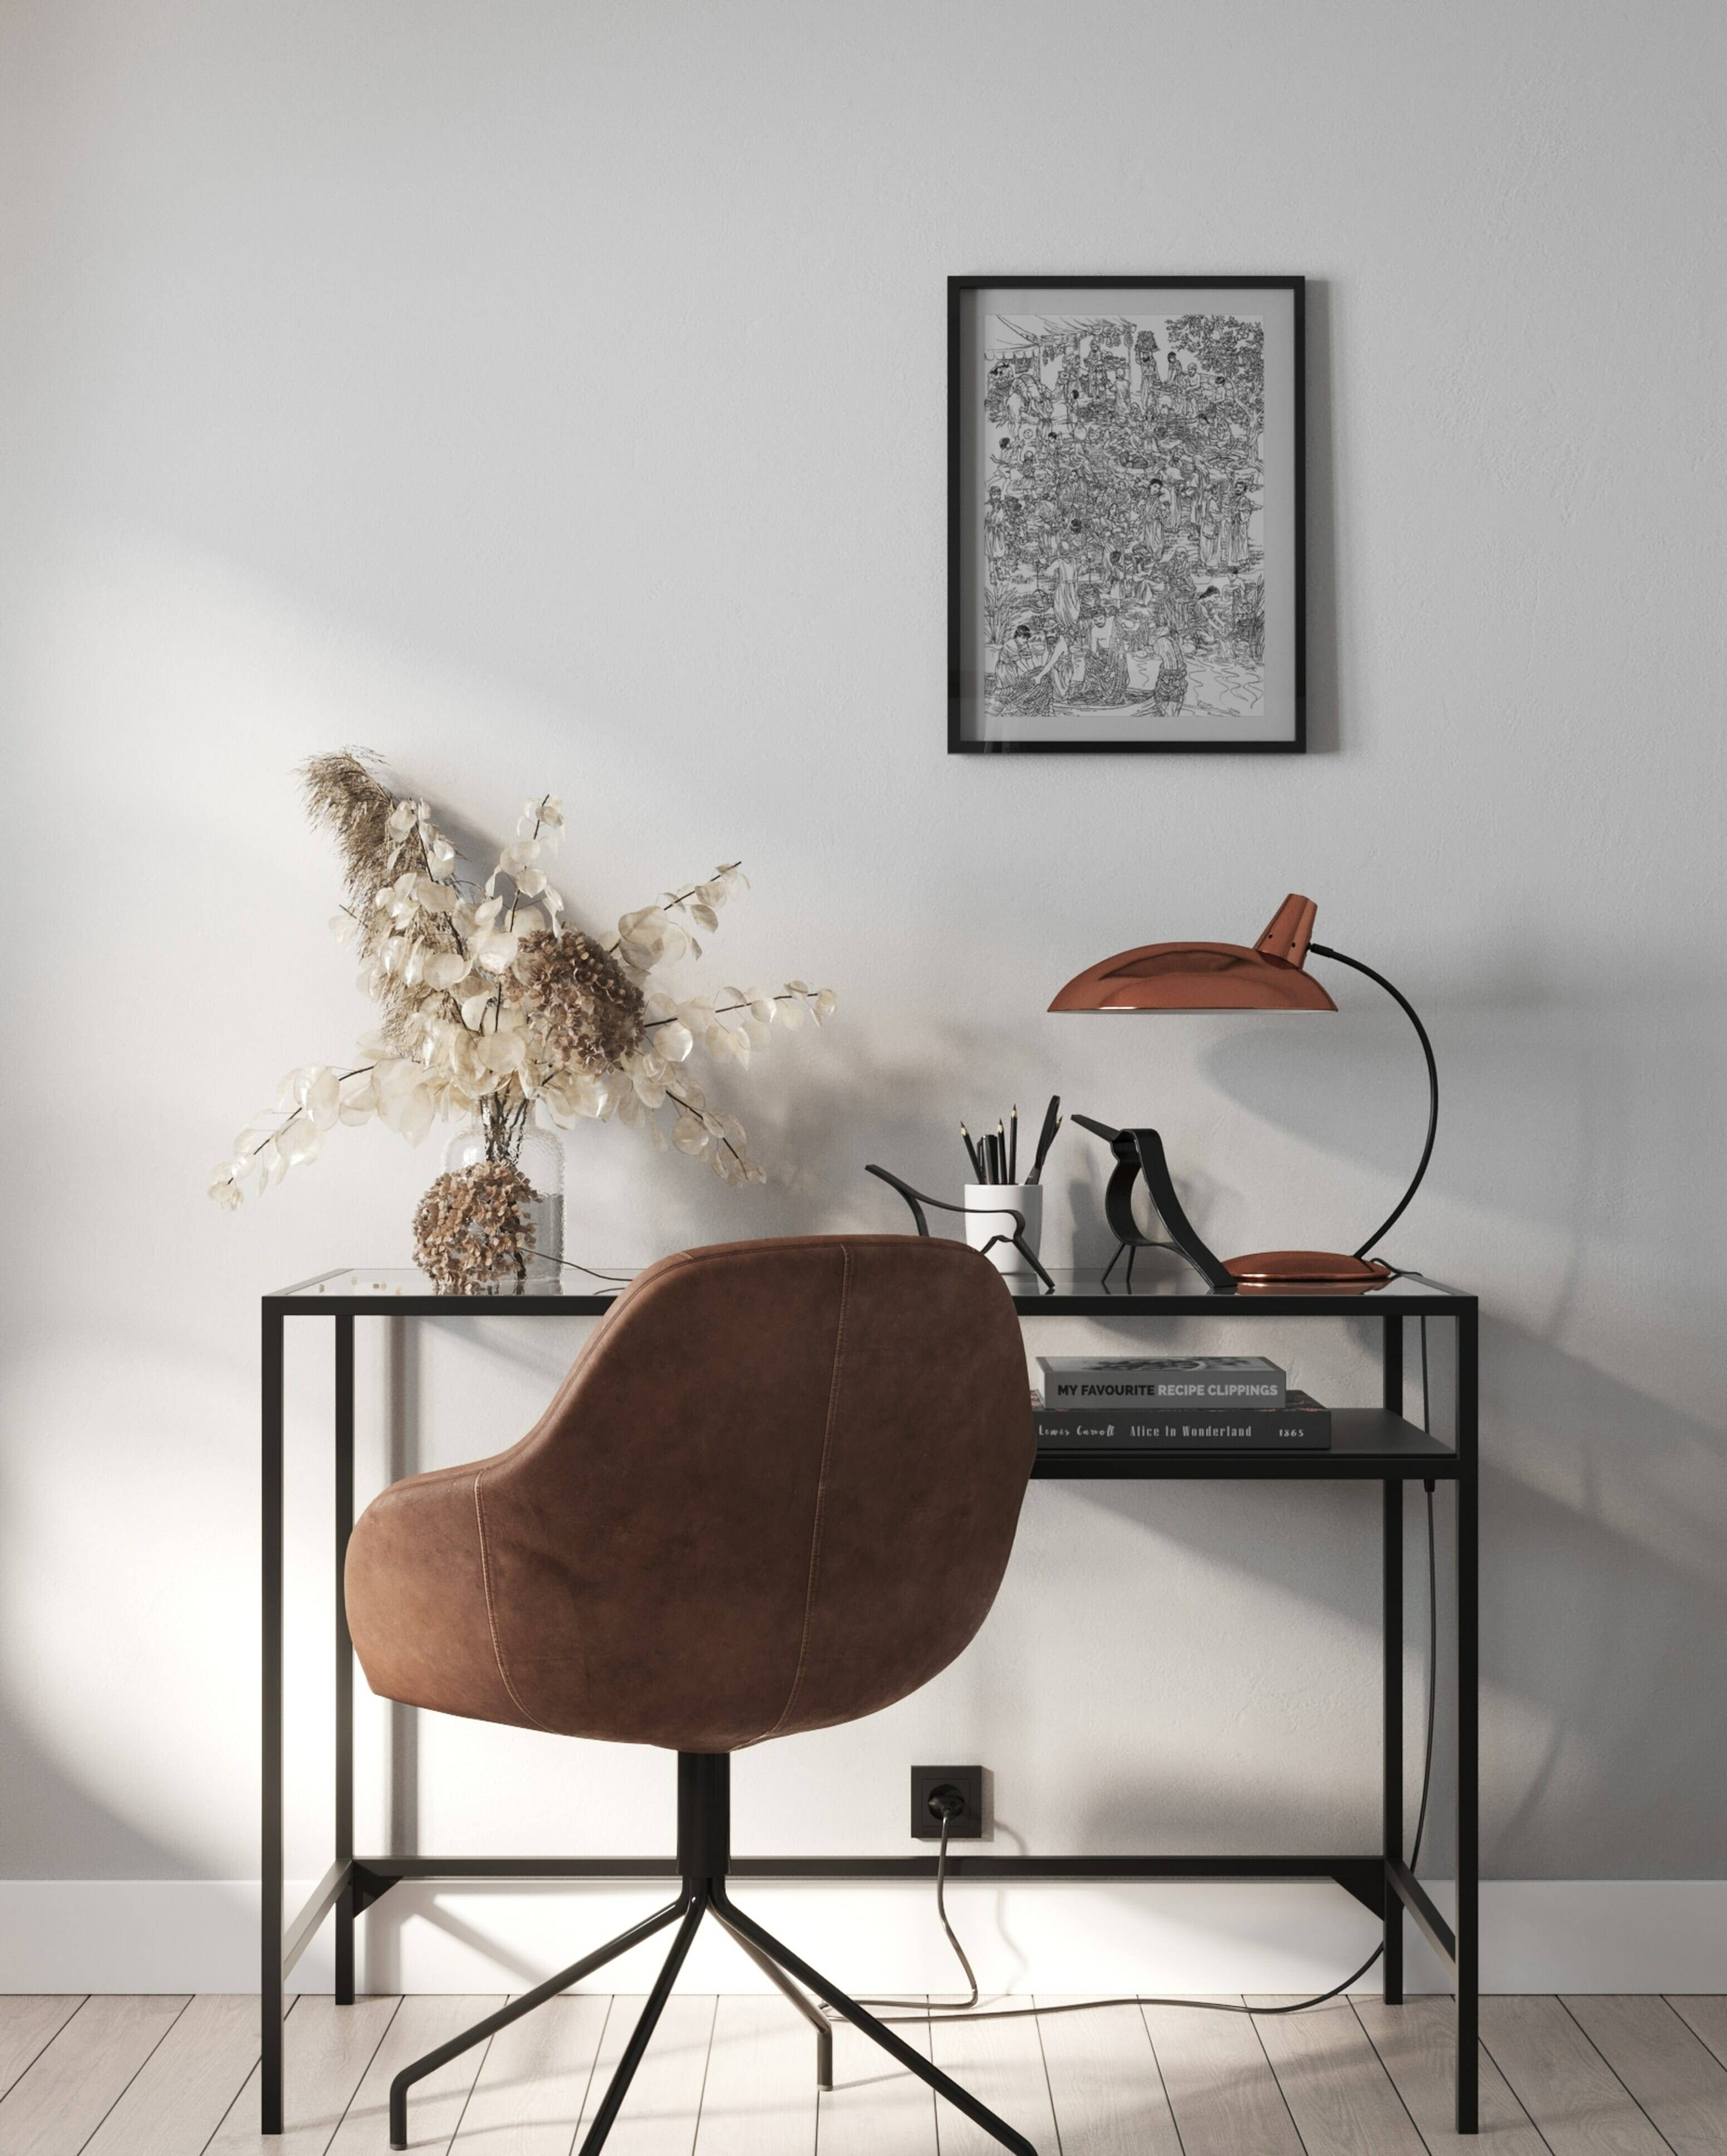 Running a creative business: desk set up with lamp, flowers and wall art